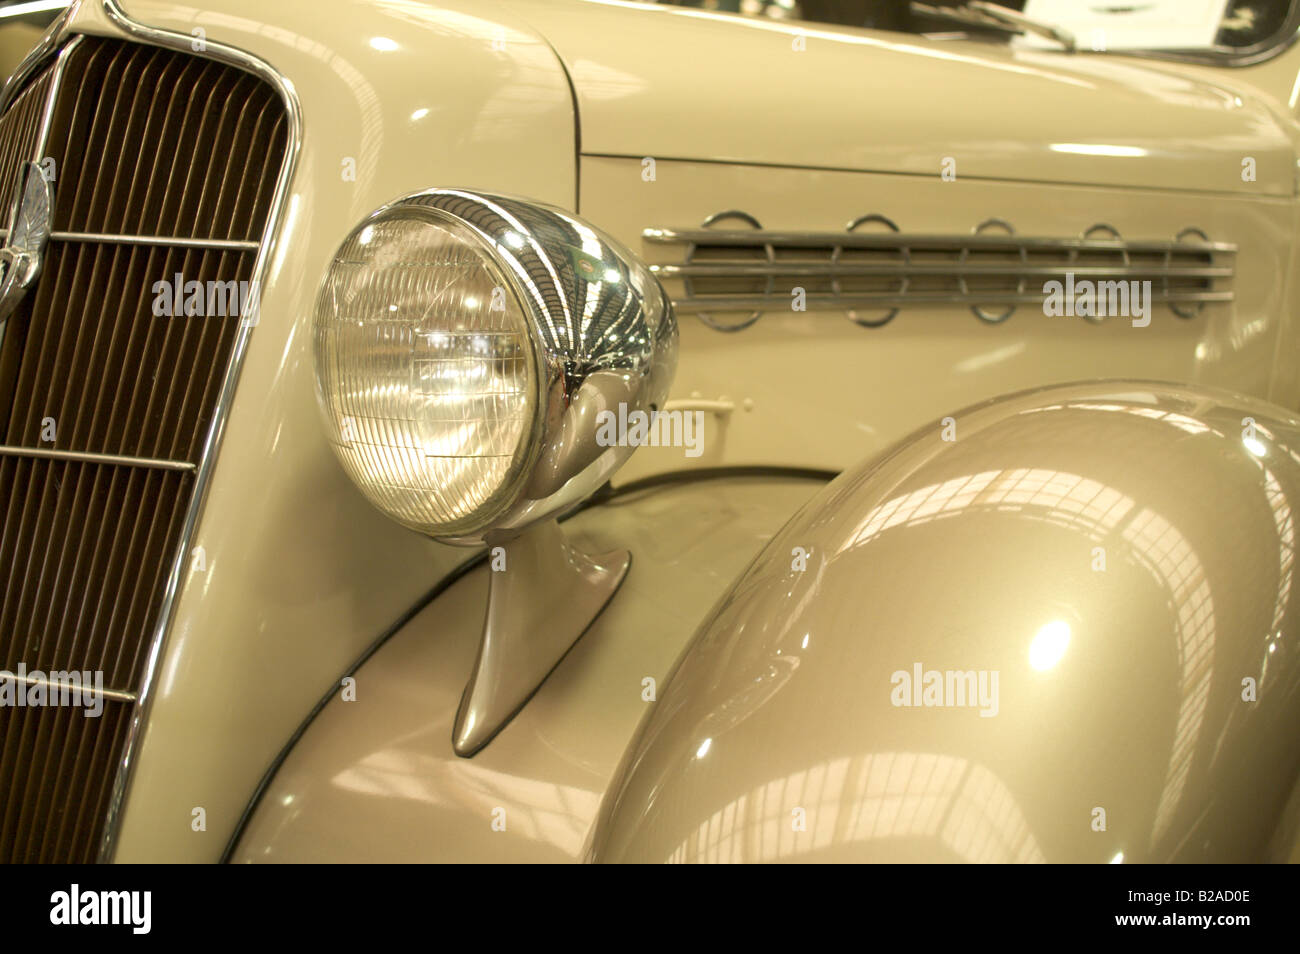 Plymouth Automobile Stock Photos Images 1950 To 1955 Cars Vintage Car Hood Fender Headlamp Classic Auto Image